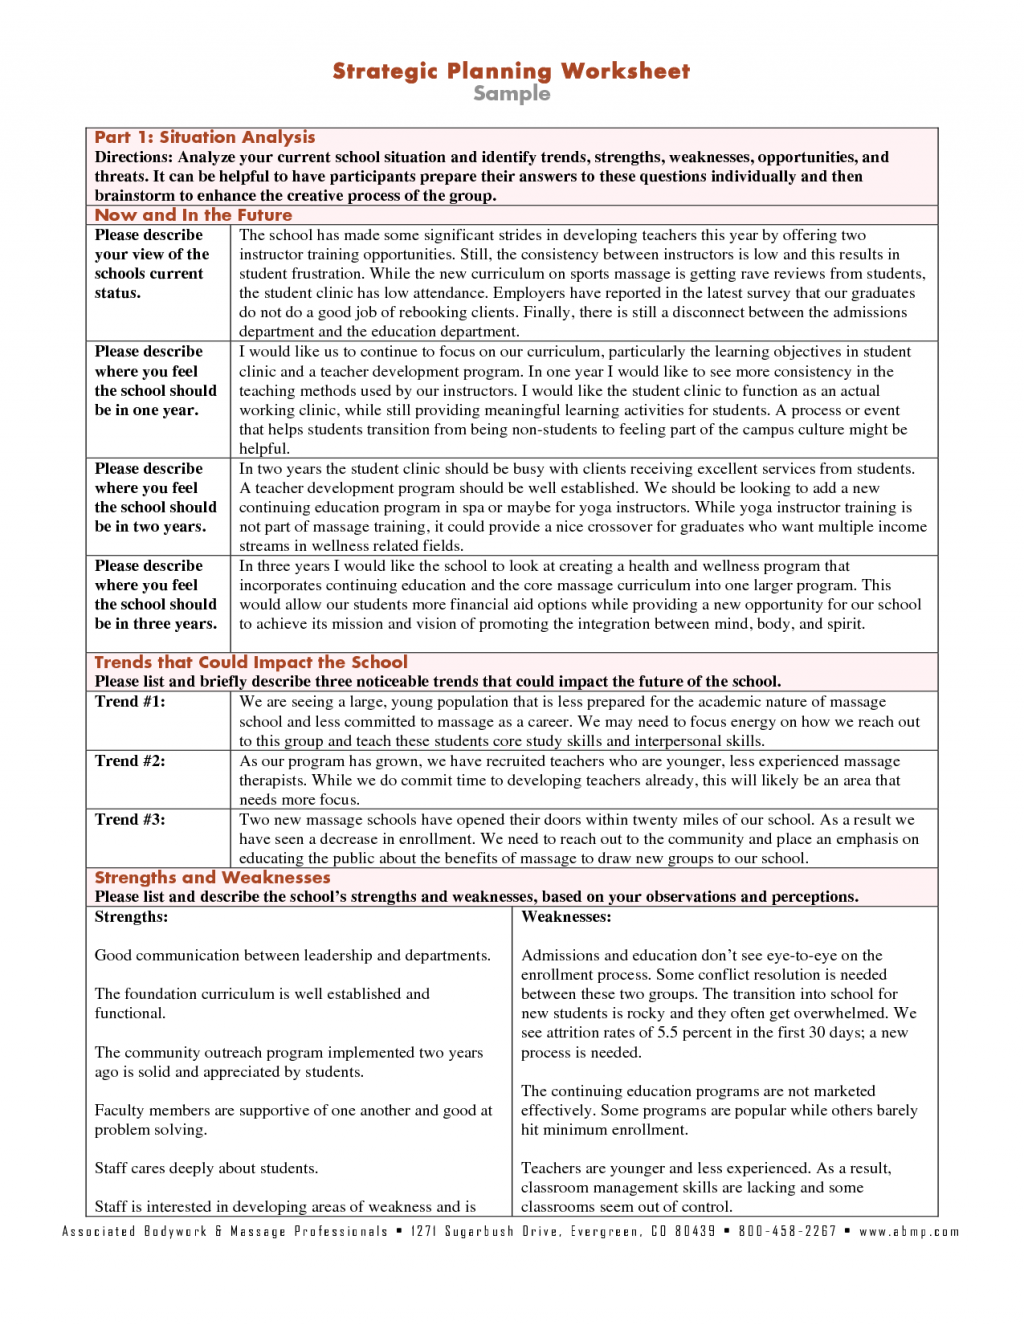 Worksheet Sample Strategic Planning Worksheets